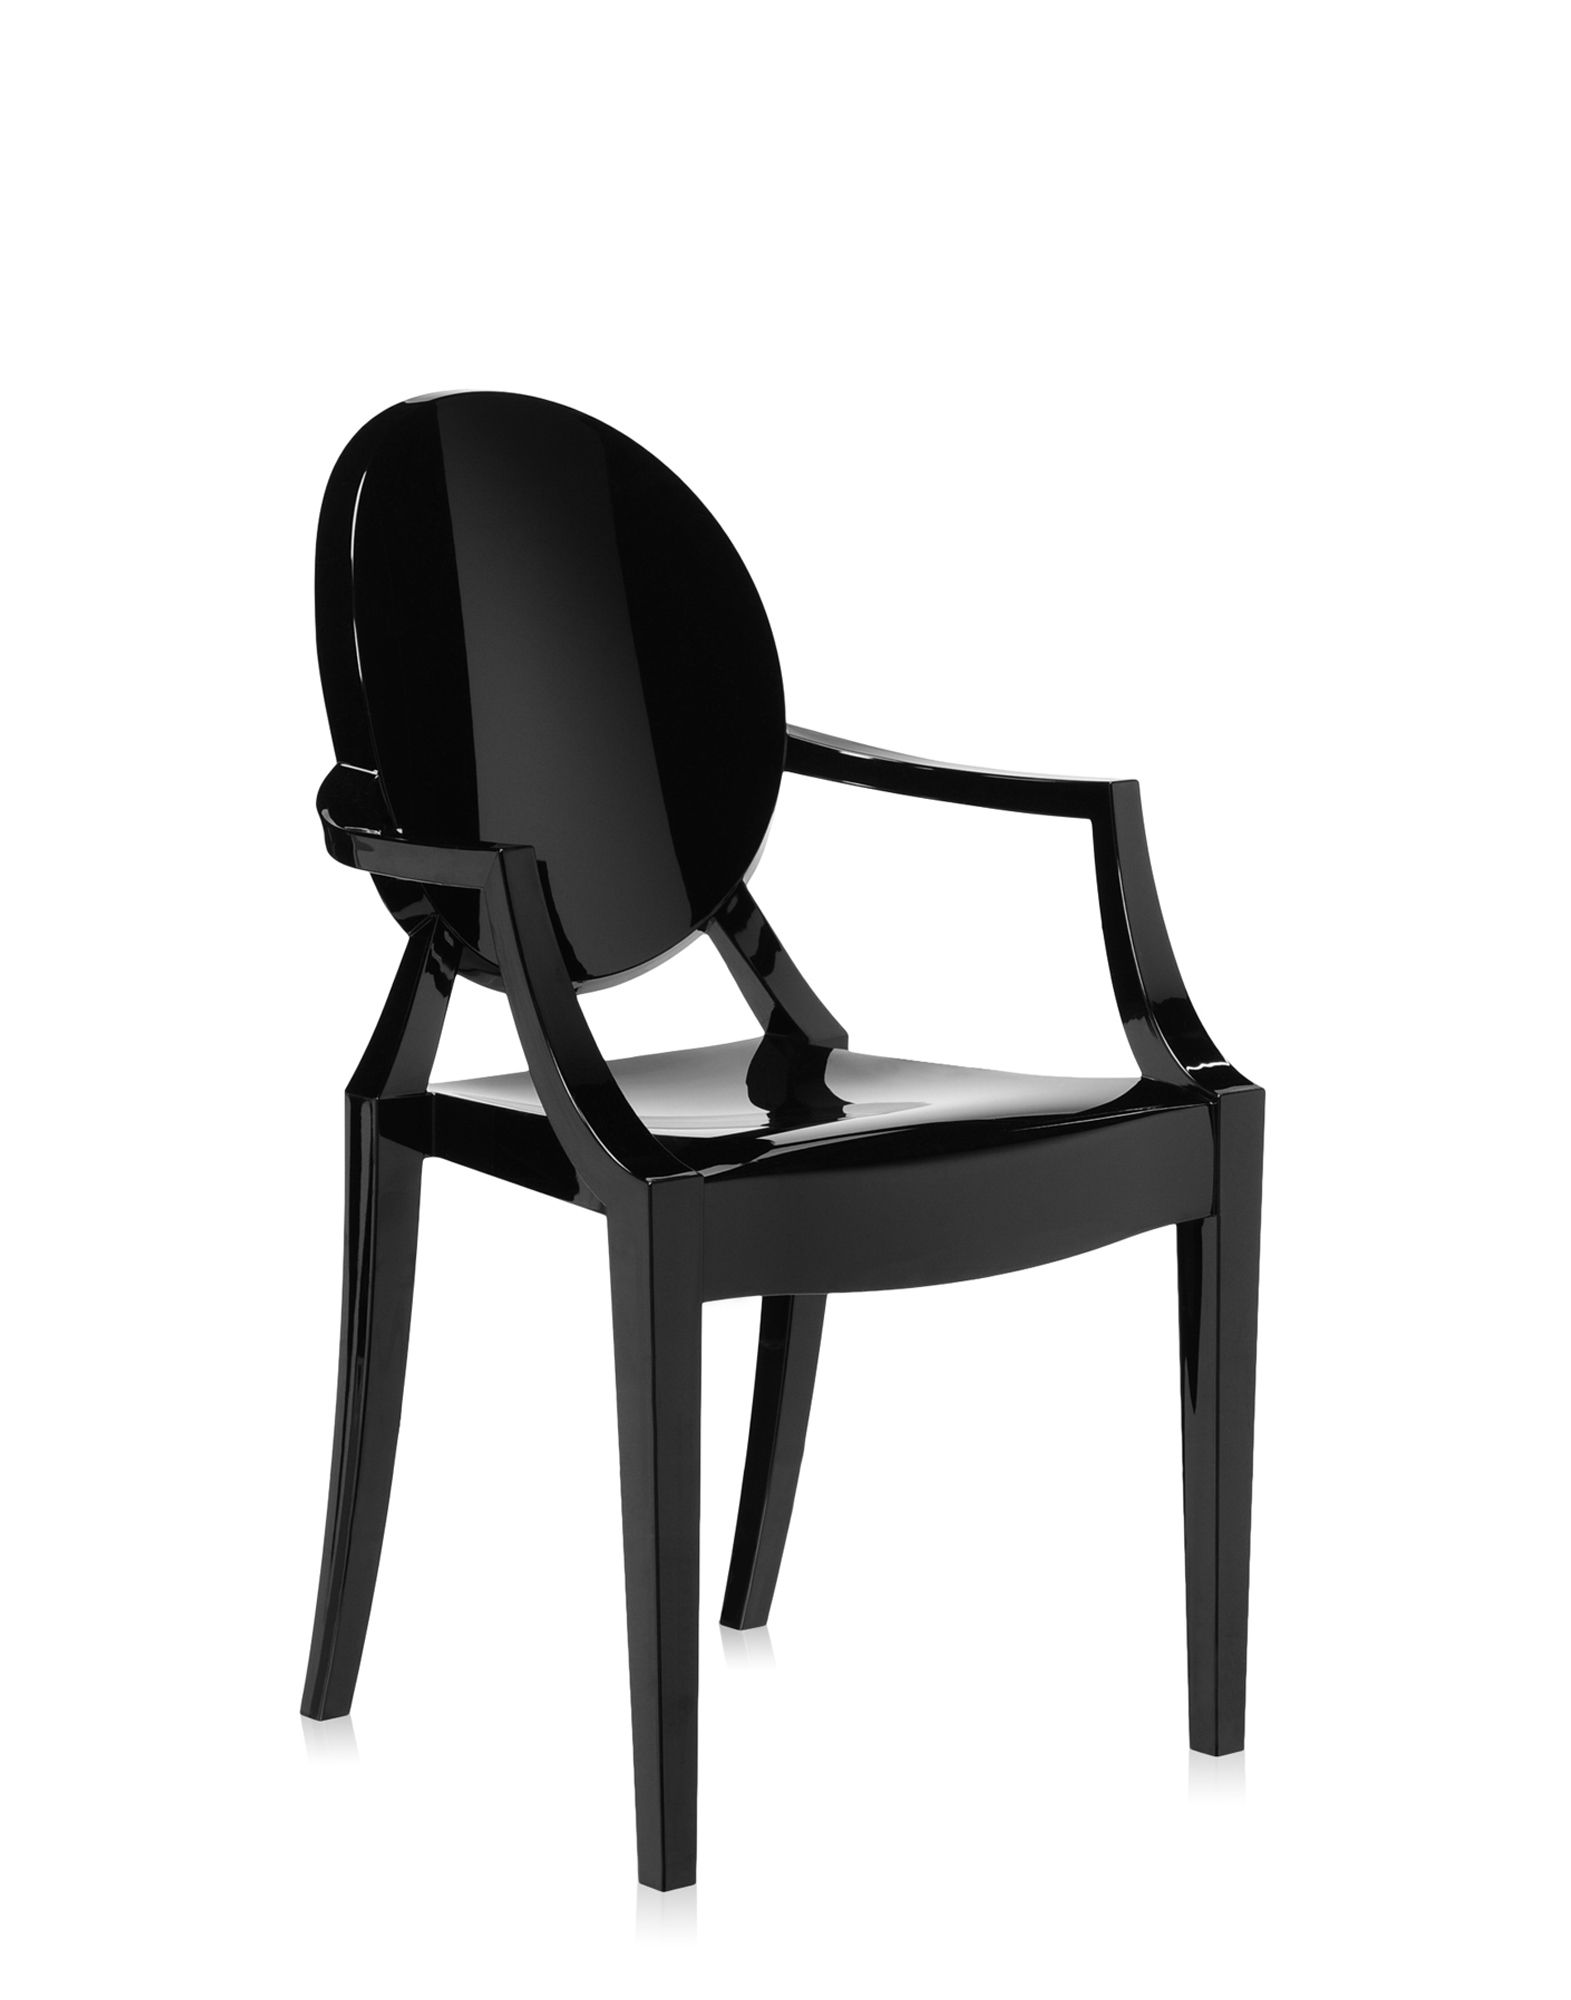 kartell sedia louis ghost nera sedie design newformsdesign. Black Bedroom Furniture Sets. Home Design Ideas